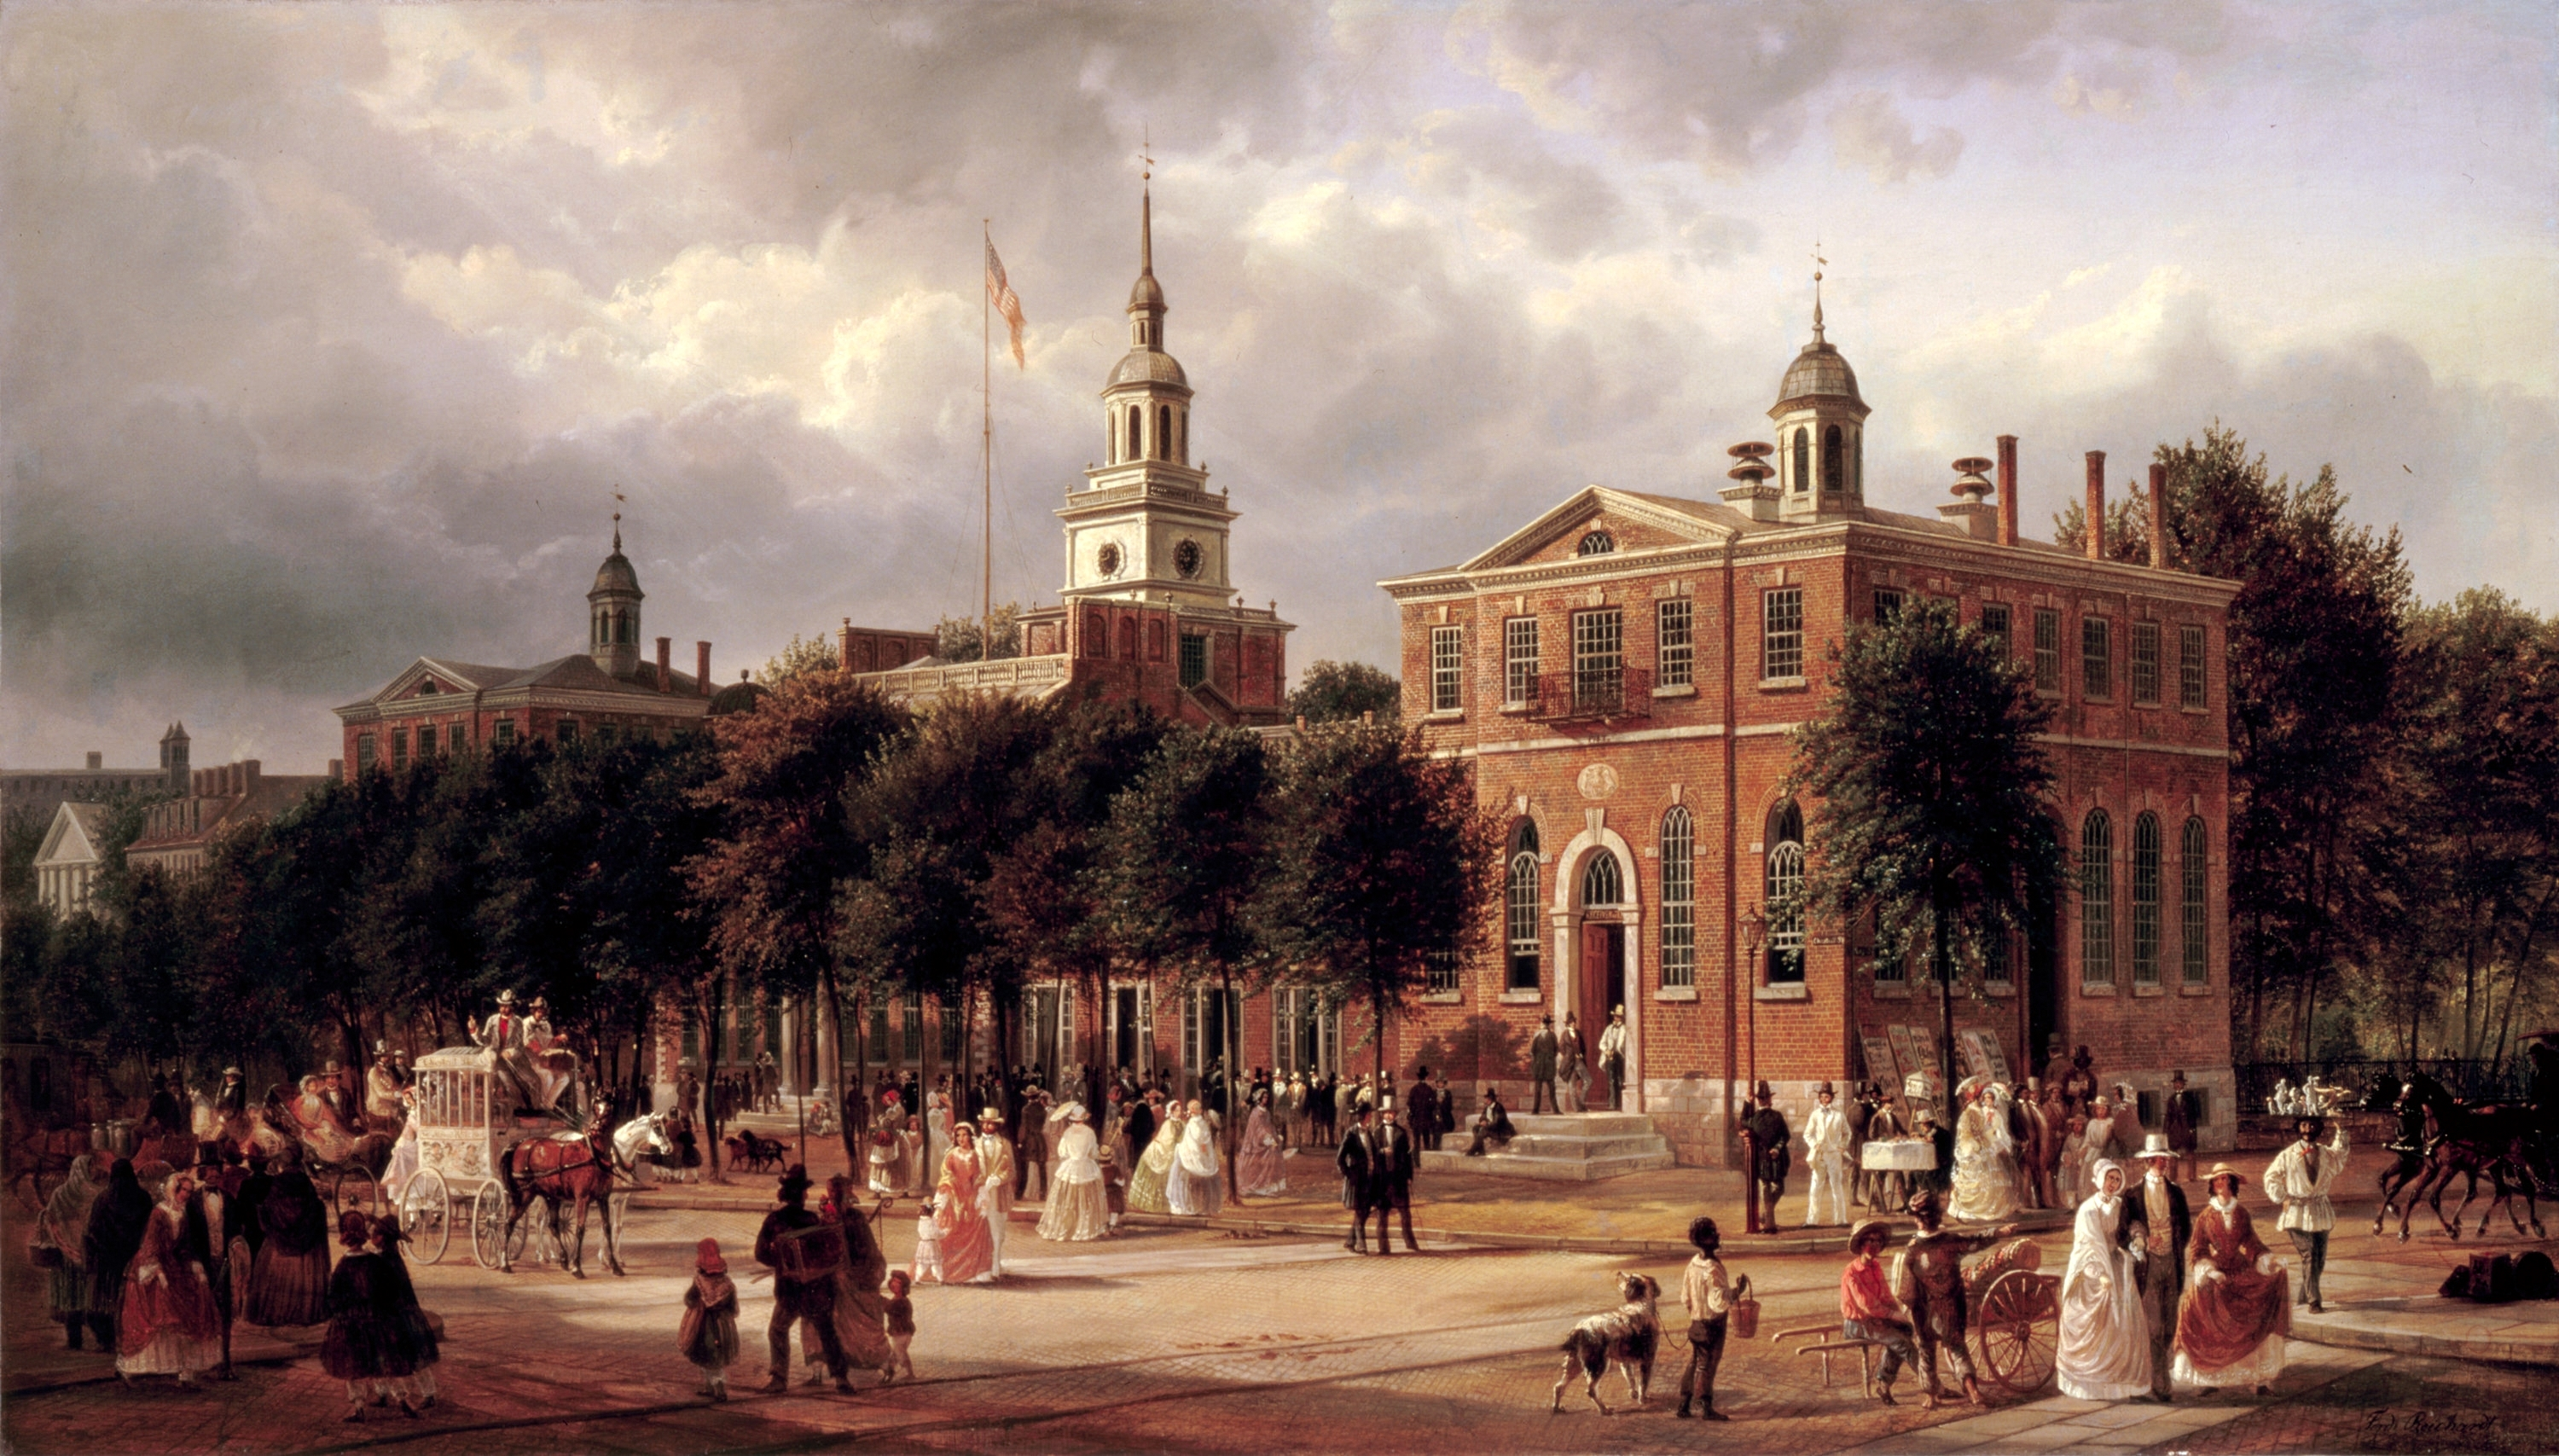 Independence Hall in Philadelphia, oil on canvas by Joachim Ferdinand Richardt, circa 1858-1863. The original is currently displayed at the White House in Washington, D.C., a gift of Mr. and Mrs. Joseph Levine in memory of President John F. Kennedy. Notes by Kloss, William, et al. Art in the White House: A Nation's Pride. Washington, D.C.: The White House Historical Association, 2008: